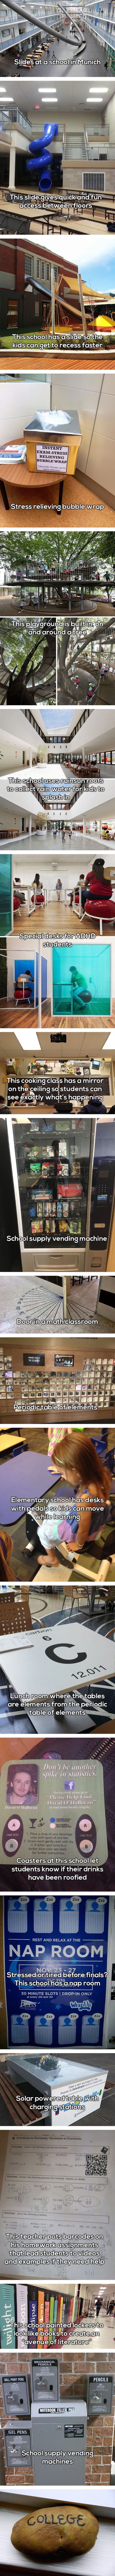 "i'm only reposting to say that my old middle school had one of those ""school supply vending machines"" (the very last picture) and i never saw a single person use it"